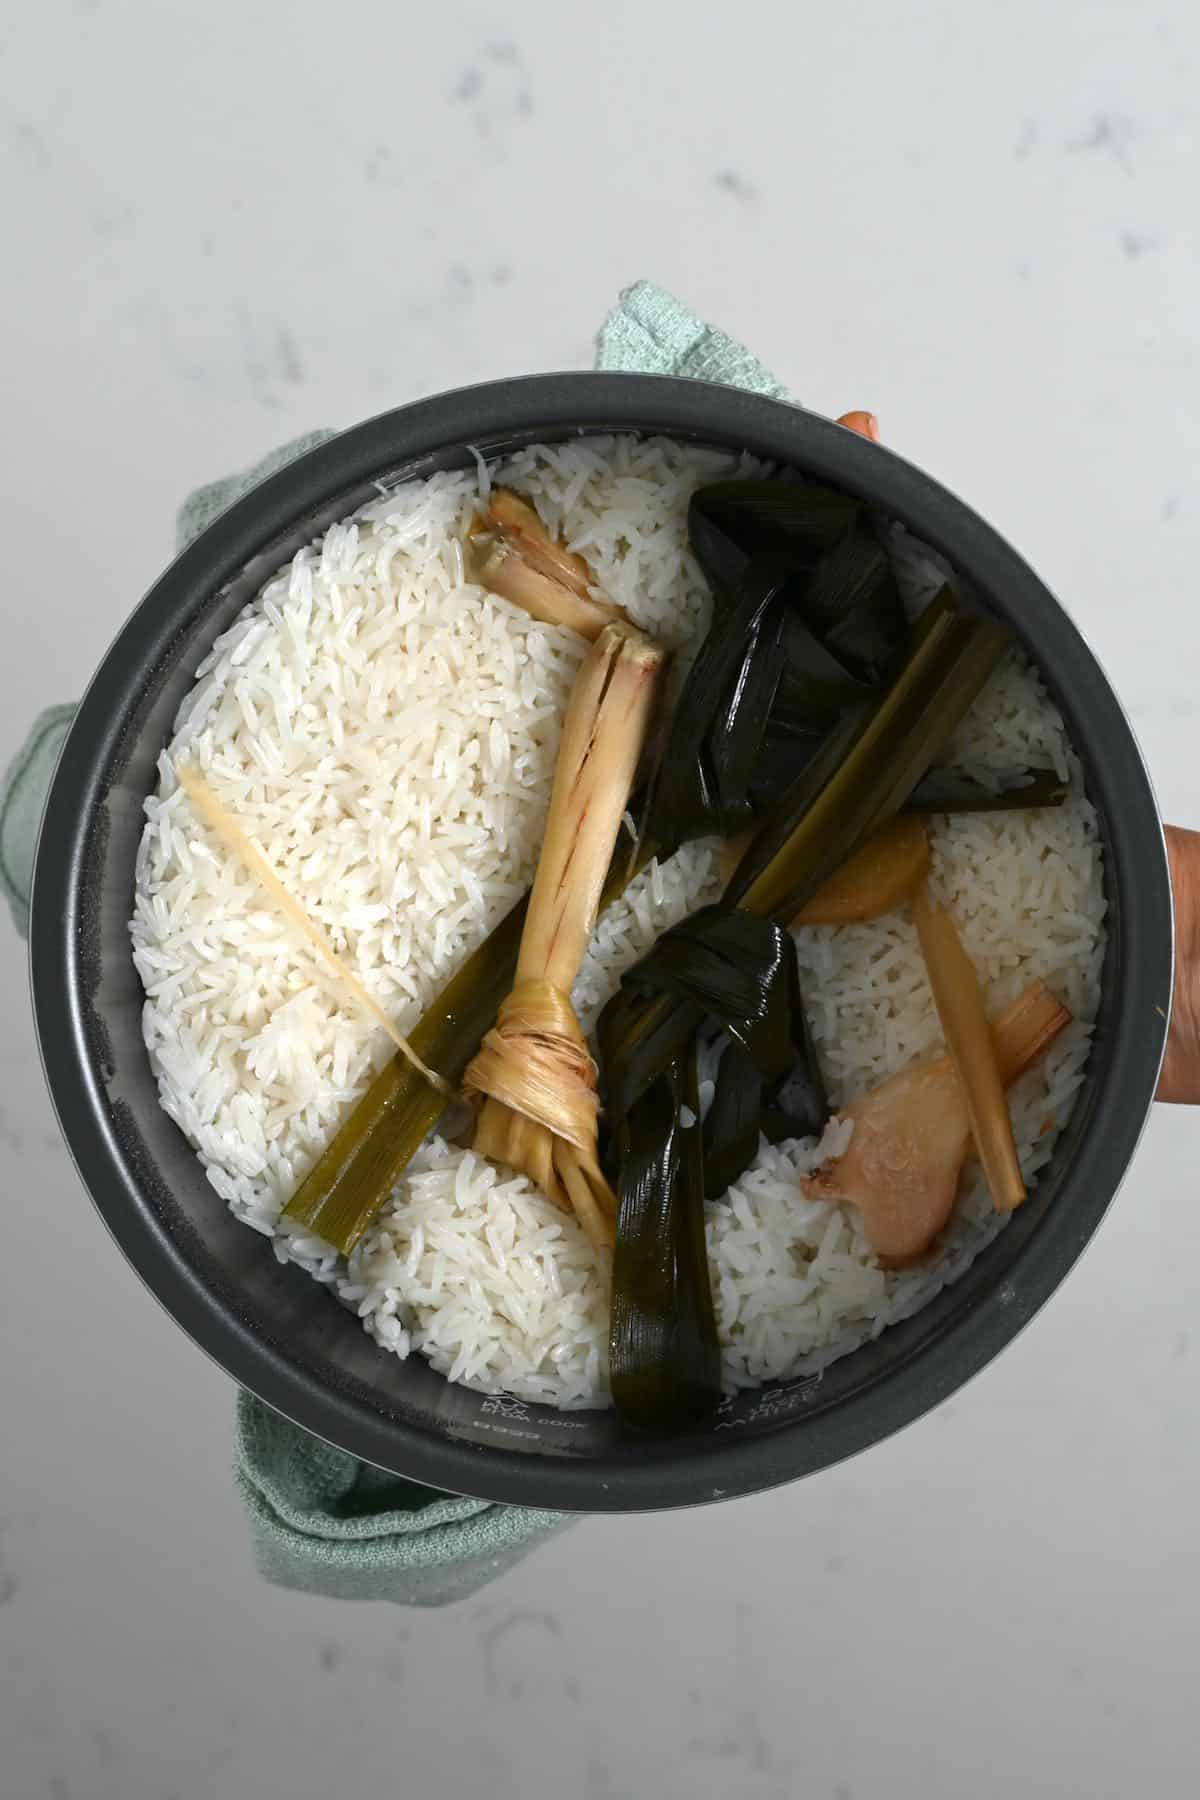 A pot with fragrant rice and lemongrass